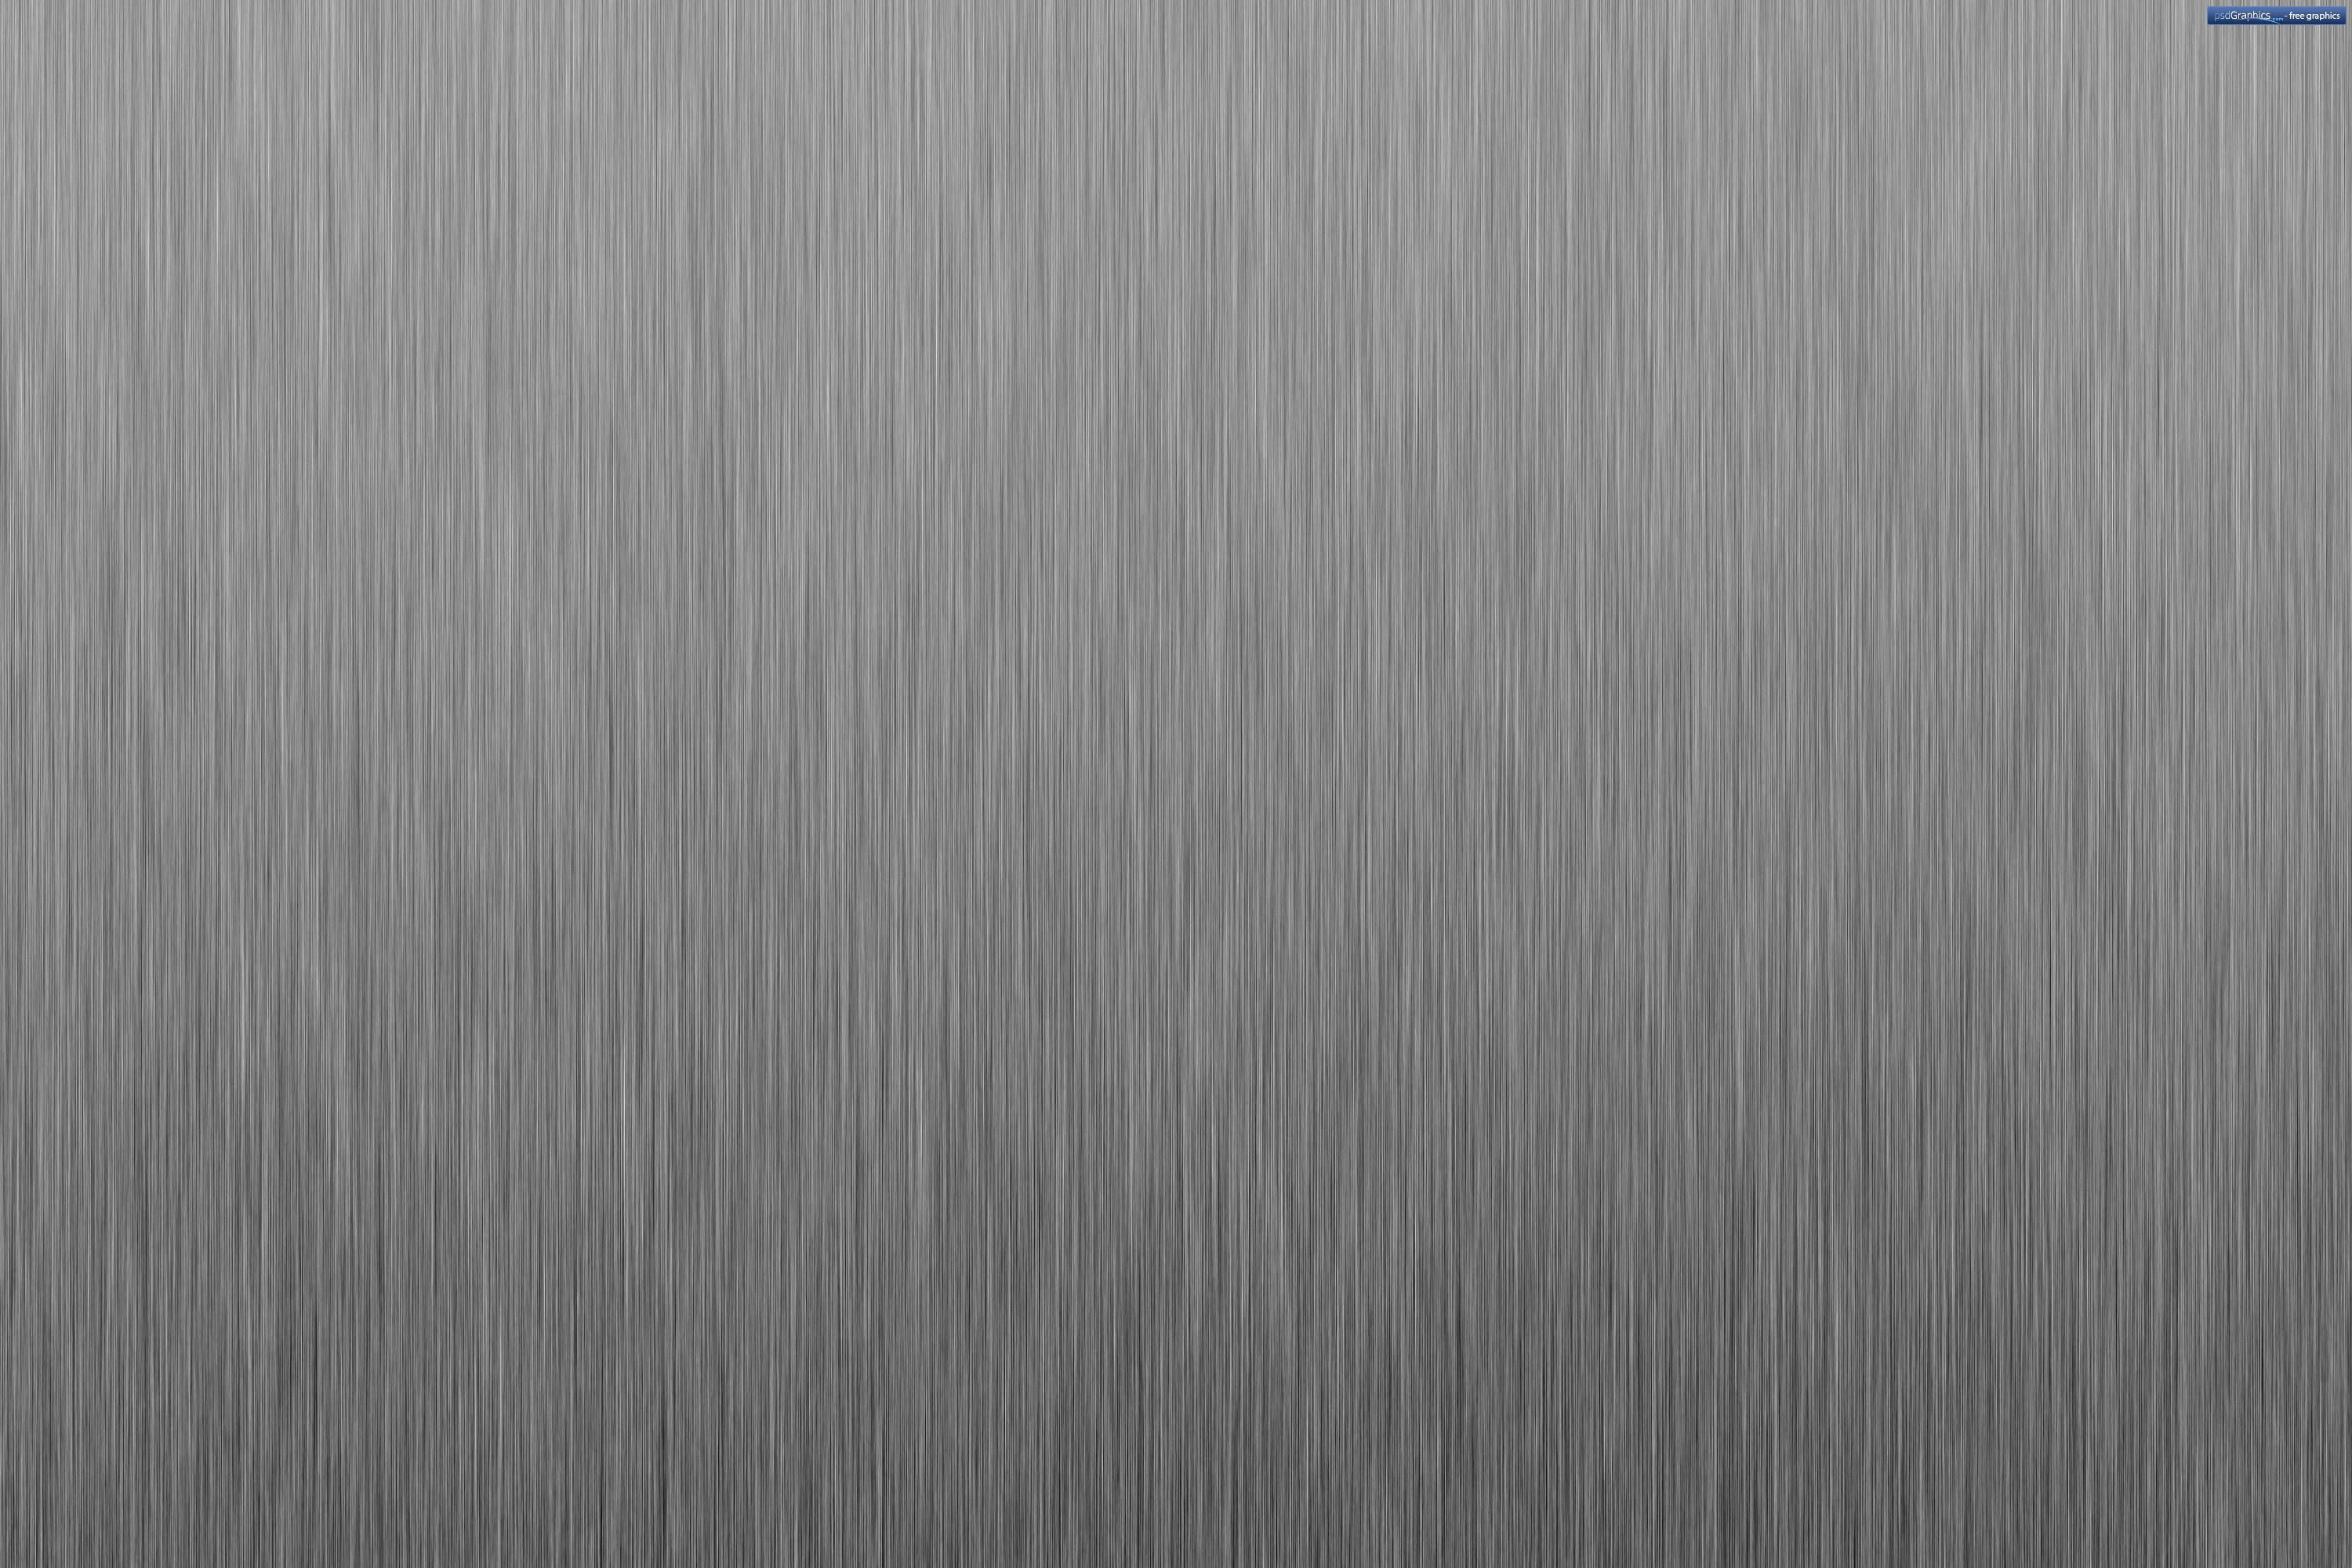 Image Result For Free Seamless Stainless Steel Textures Brushed Metal Texture Metal Texture Steel Textures